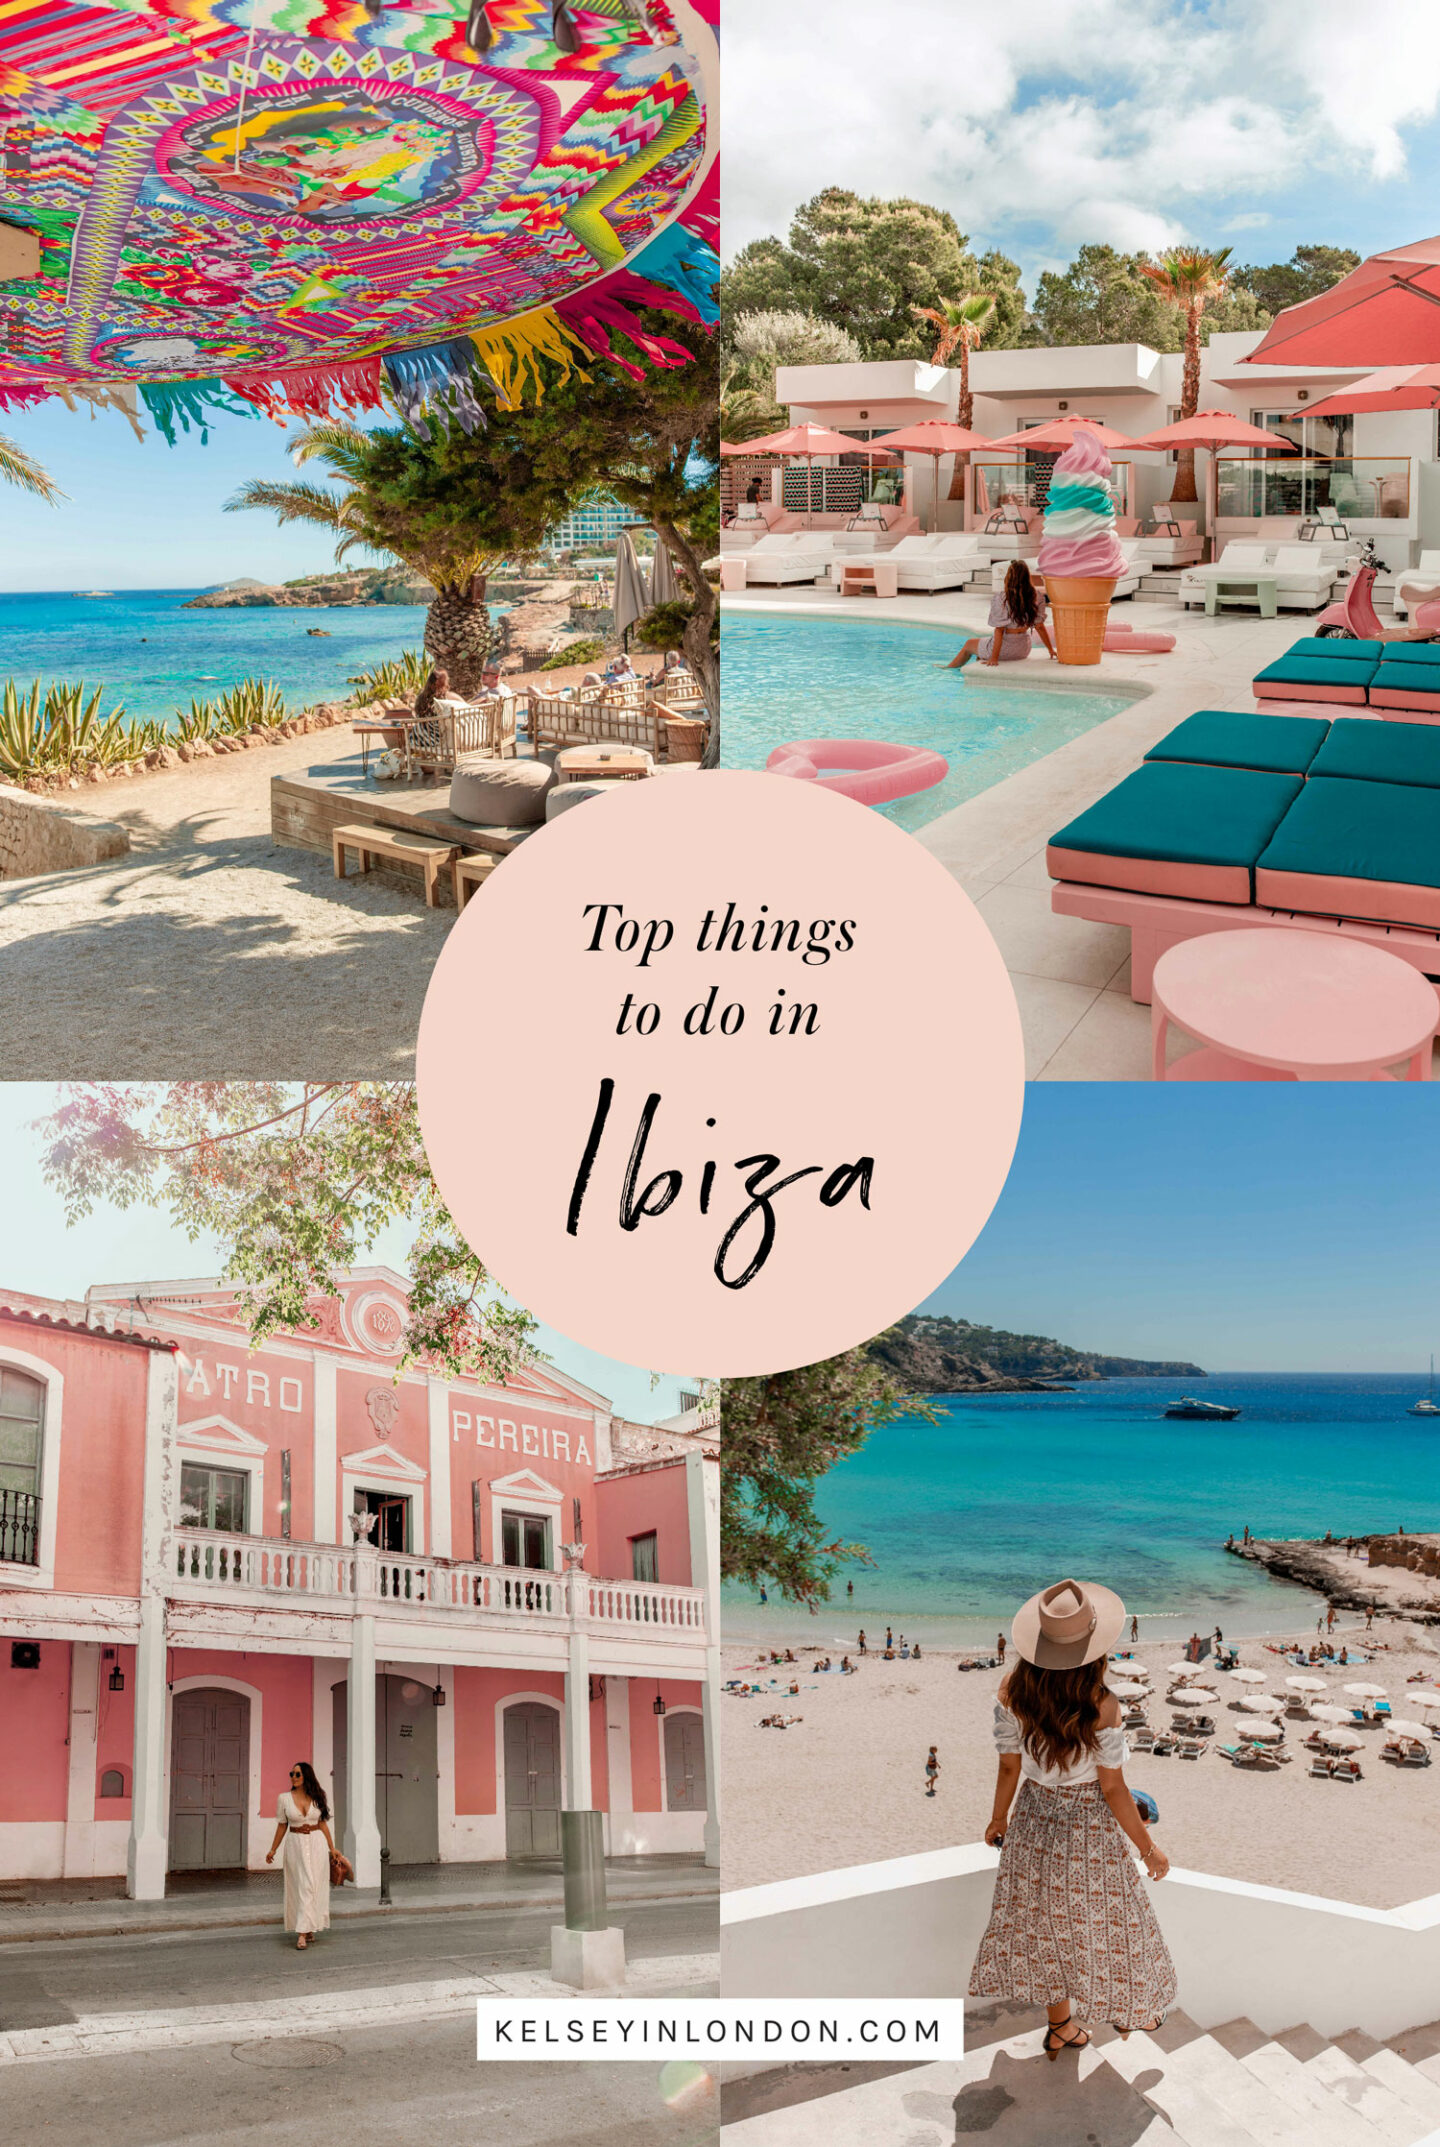 Top things to do in Ibiza Bucket list Instagram Story Template kelseyinlondon Kelsey Heinrichs What to do in Ibiza Where to go in Ibiza top places in Ibiza